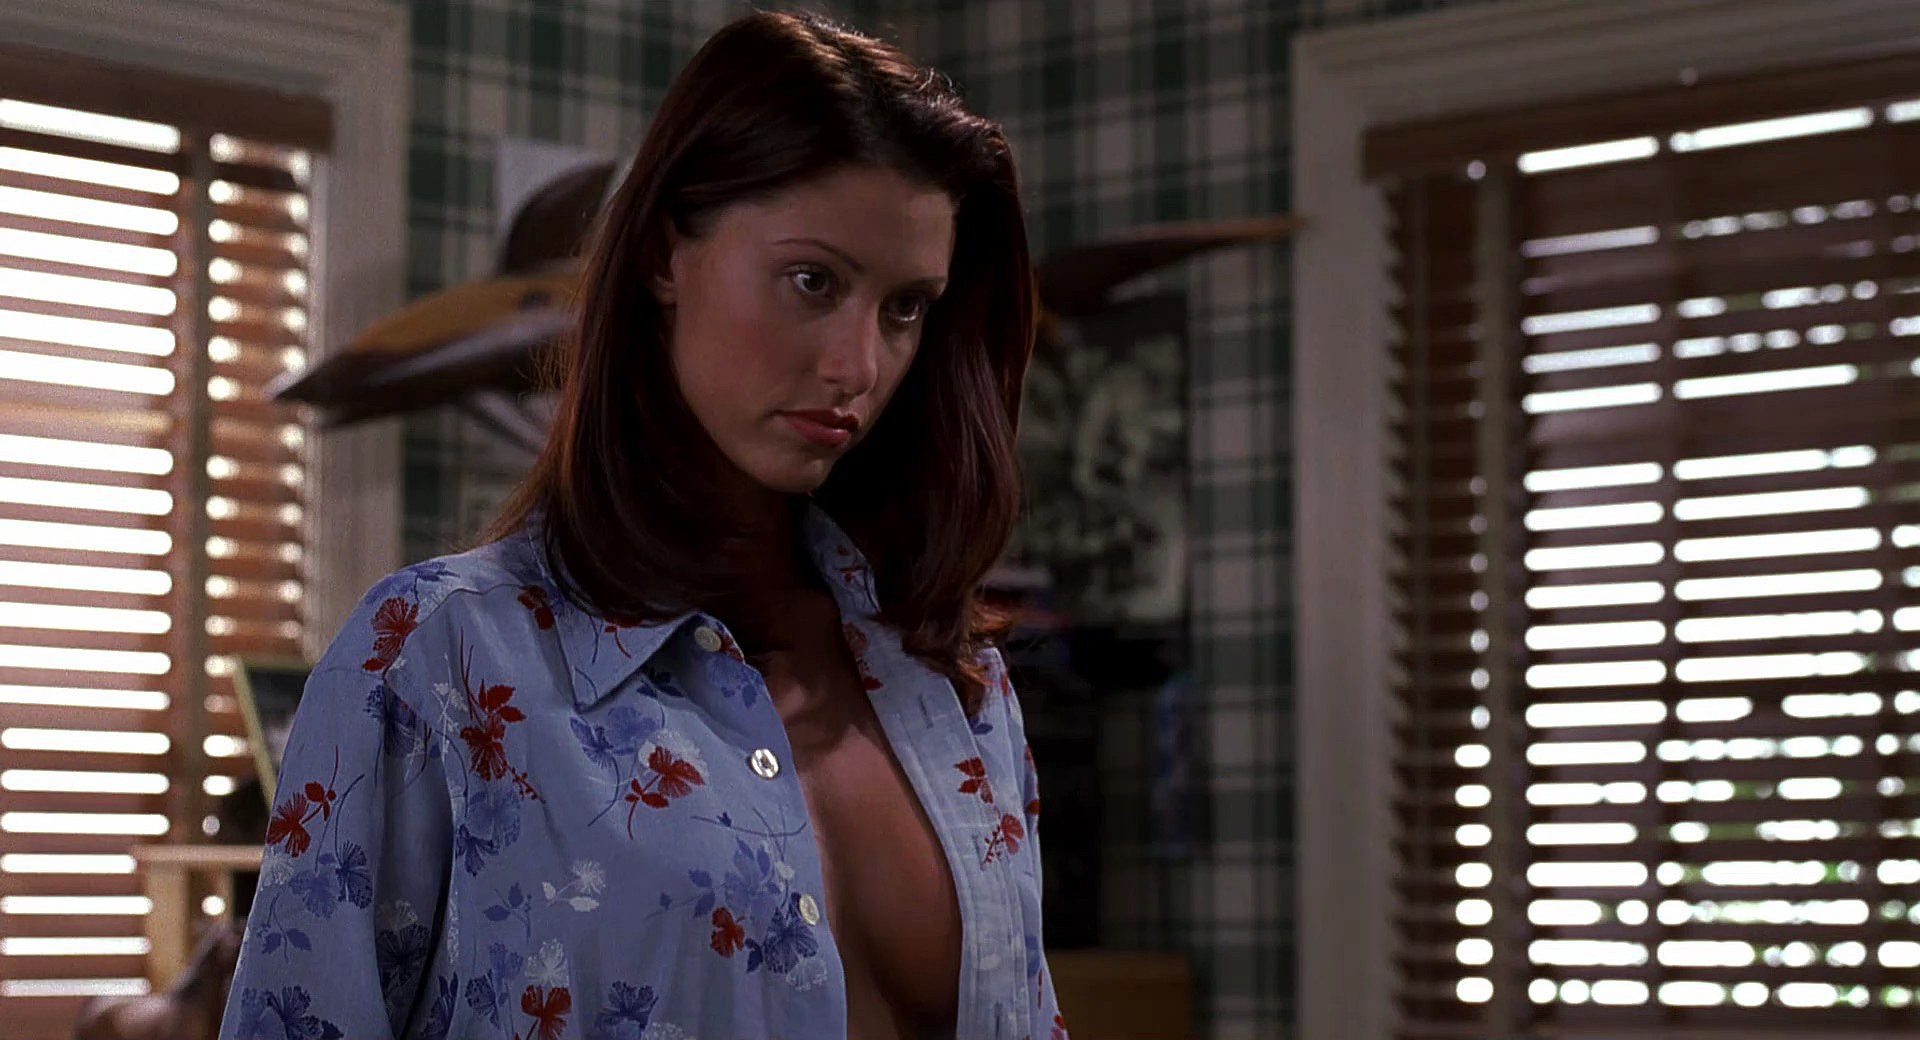 Shannon elizabeth nude boobs in american pie picture